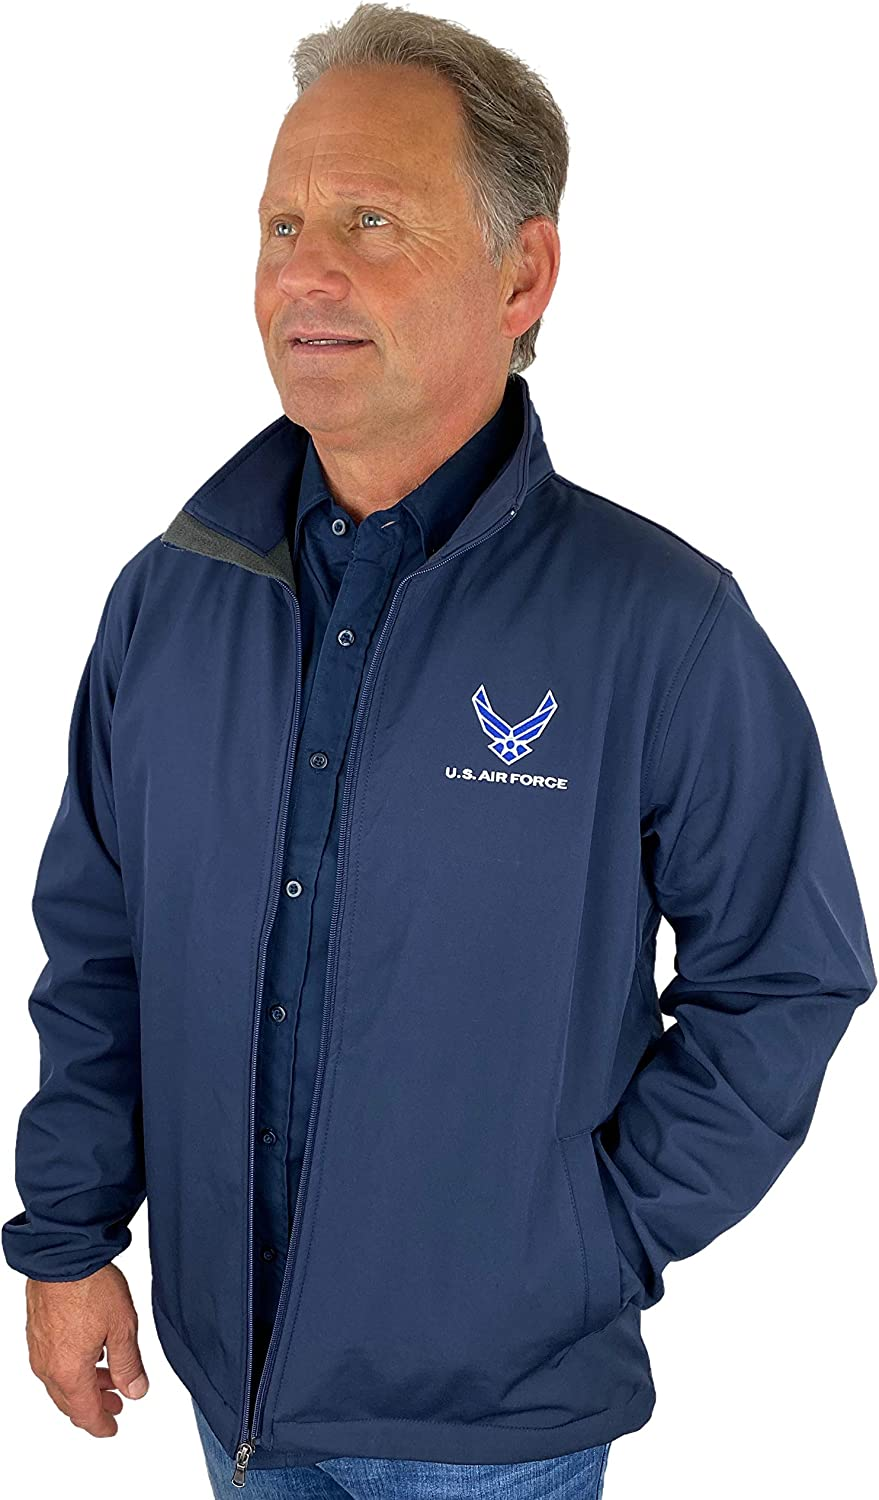 US Air Force Full Zip Jacket Made In USA